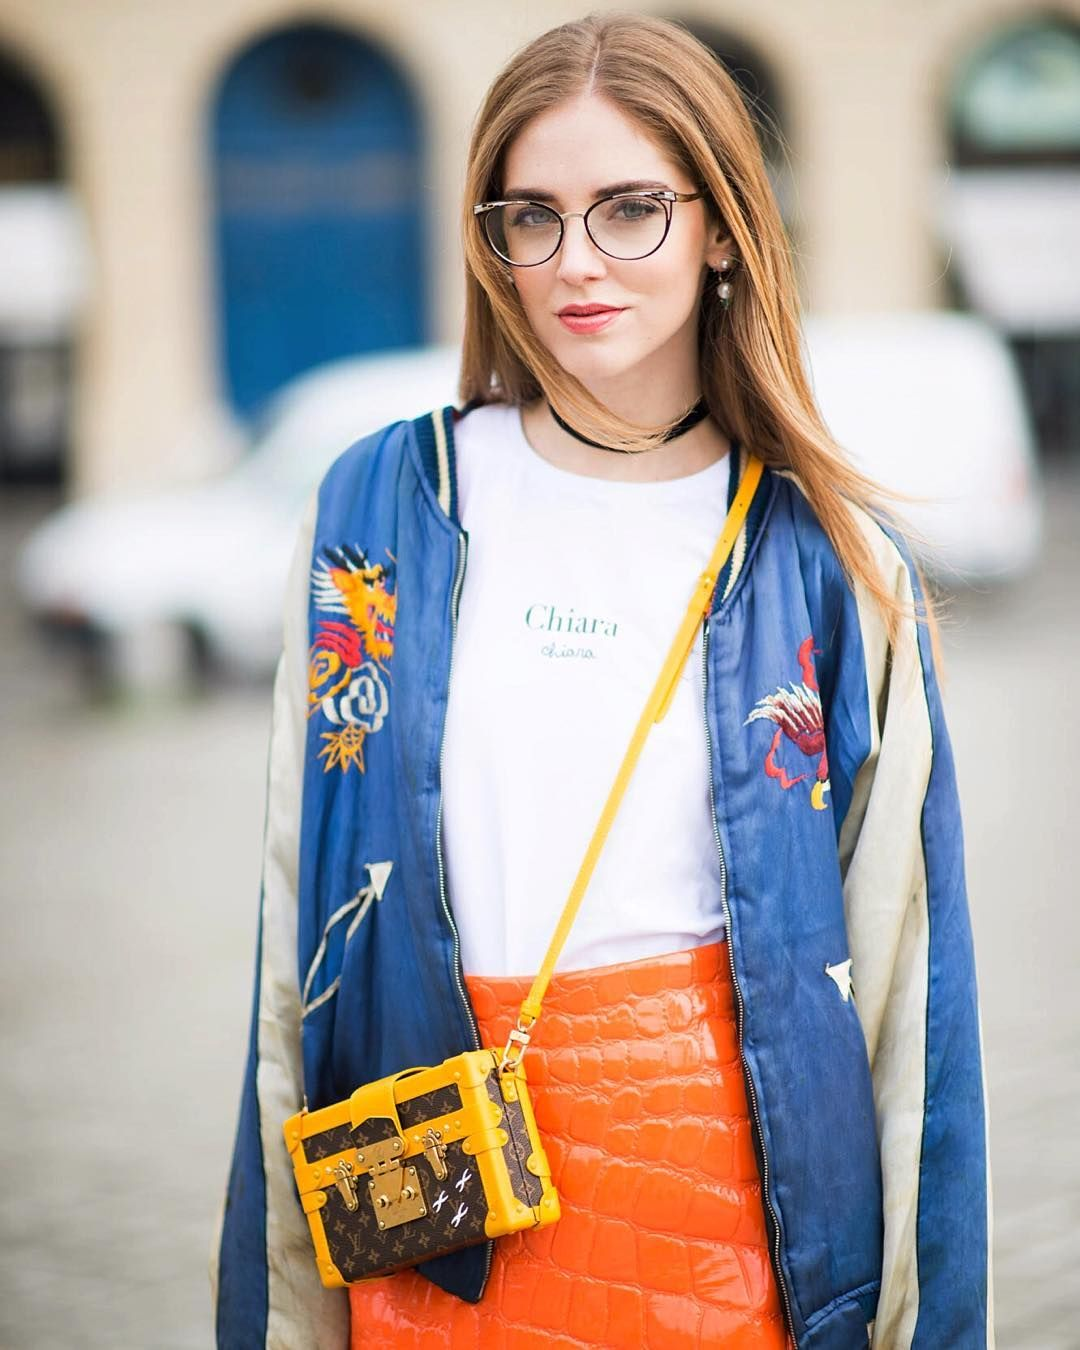 Love fiercely (and don't forget to stop along the way to take photos)  Snapchat/Twitter: @chiaraferragni #NeverStop Italian, living in Los Angeles.